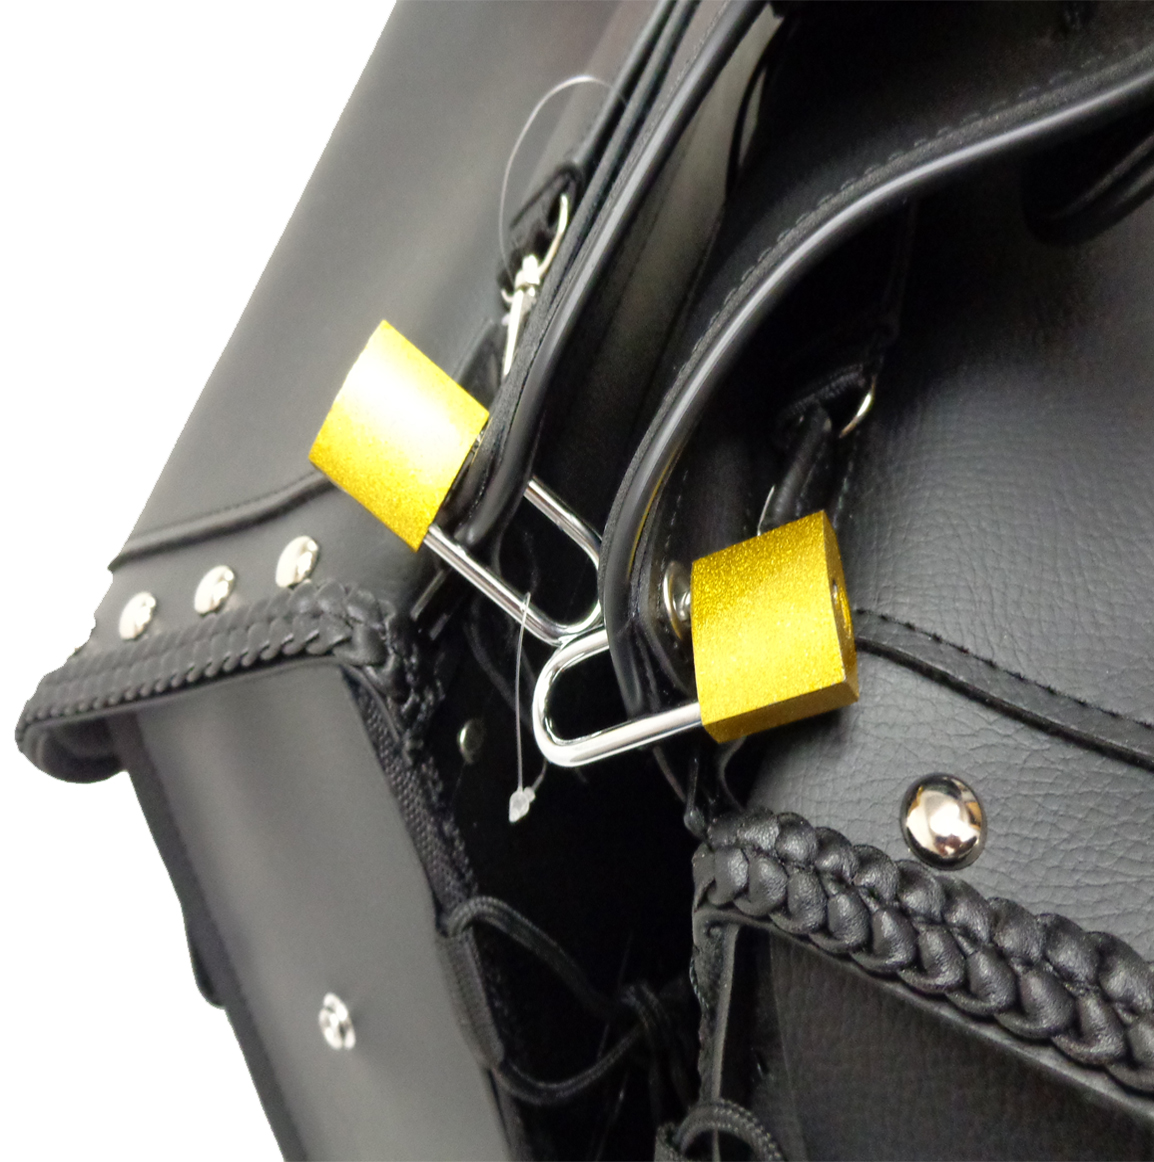 saddle bag bike reviews image